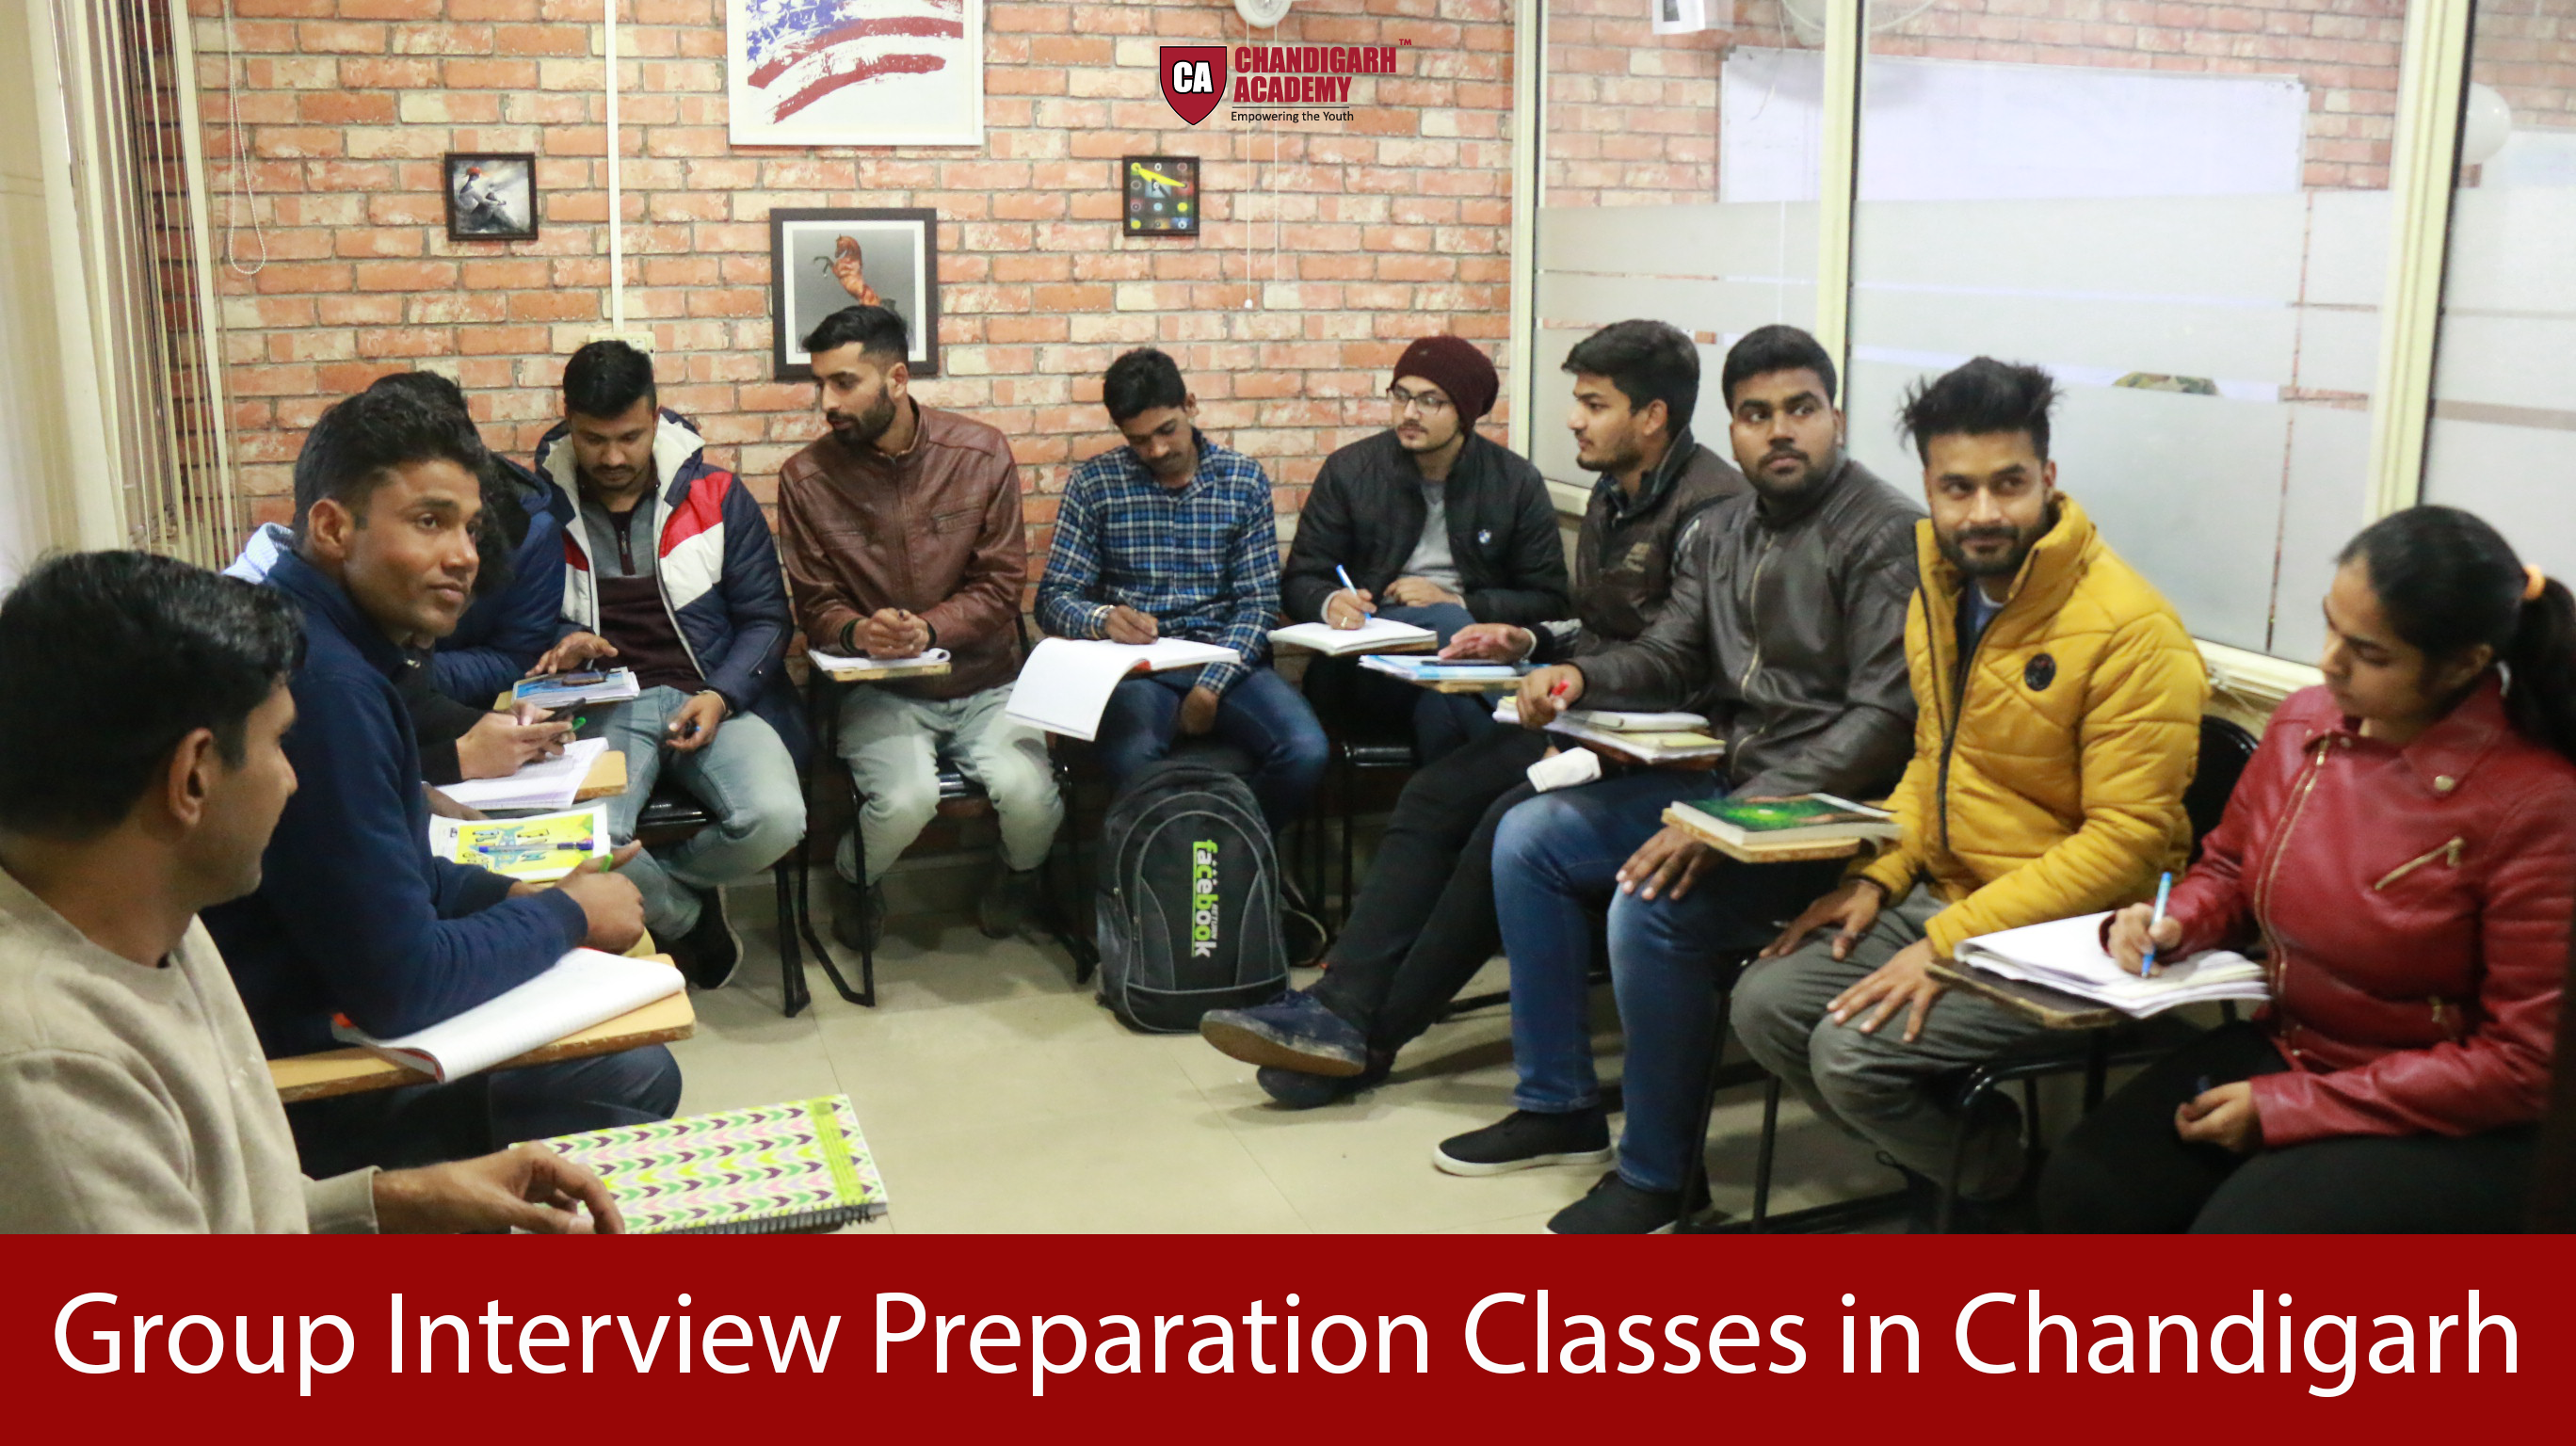 Group Interview Preparation Classes in Chandigarh